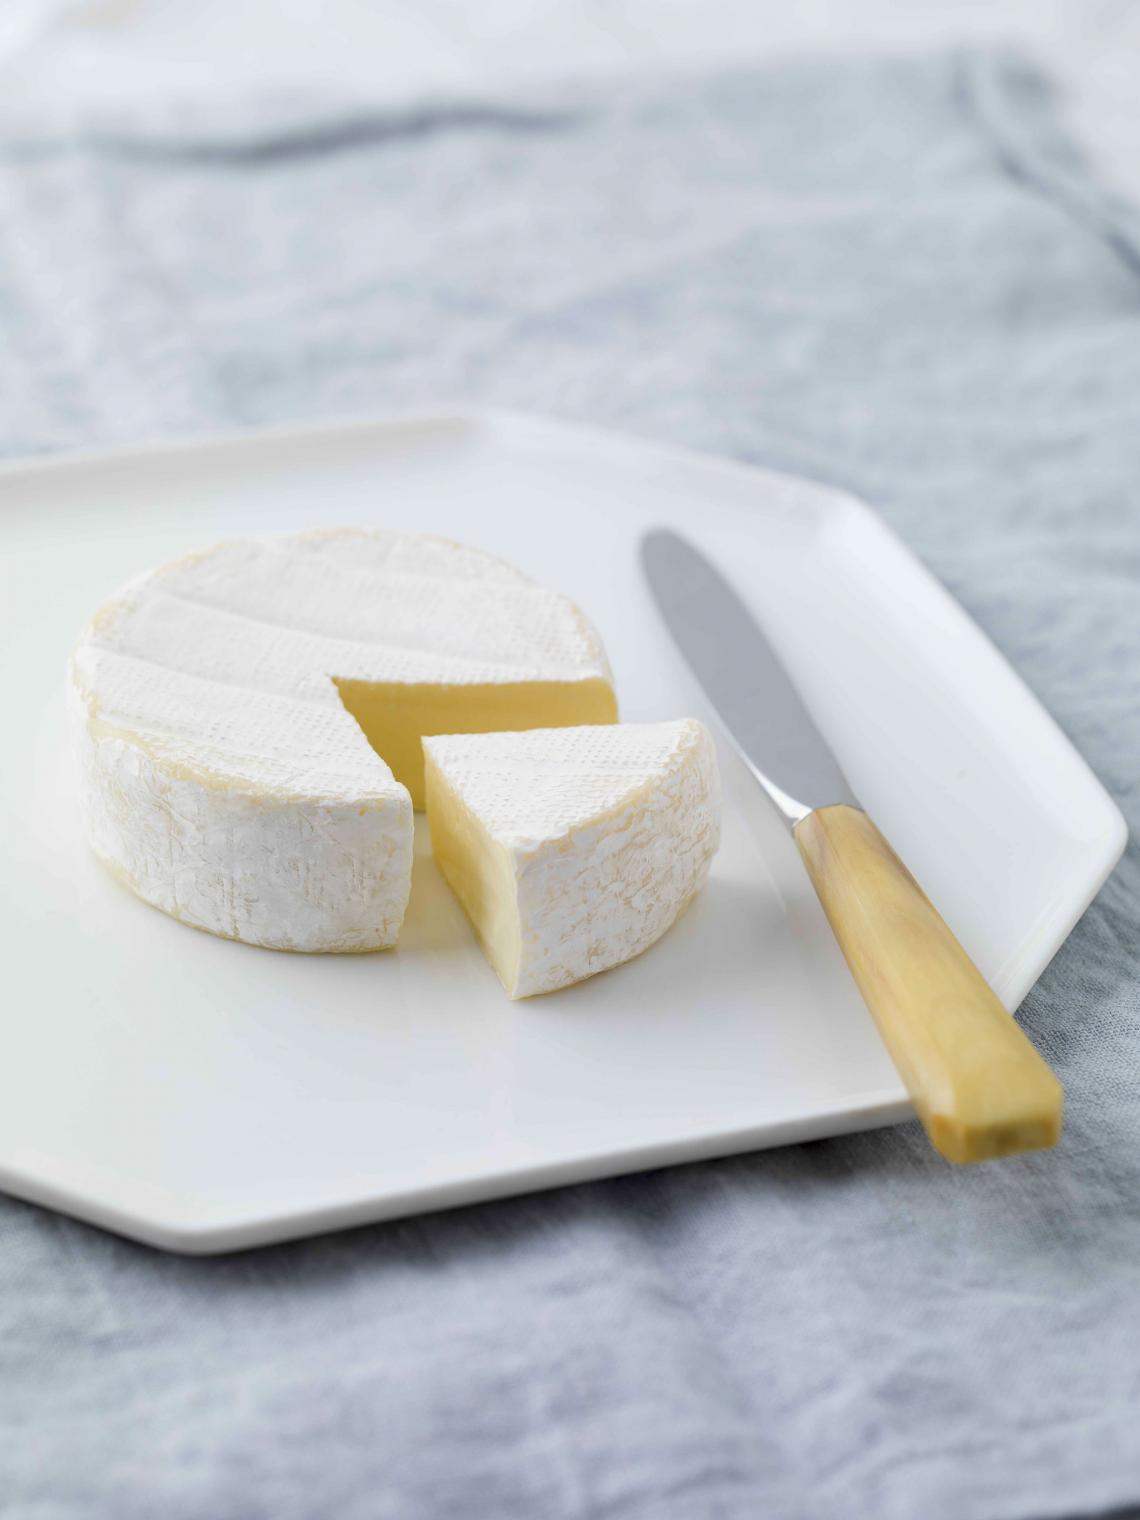 ILE DE FRANCE® petit camembert on a plate